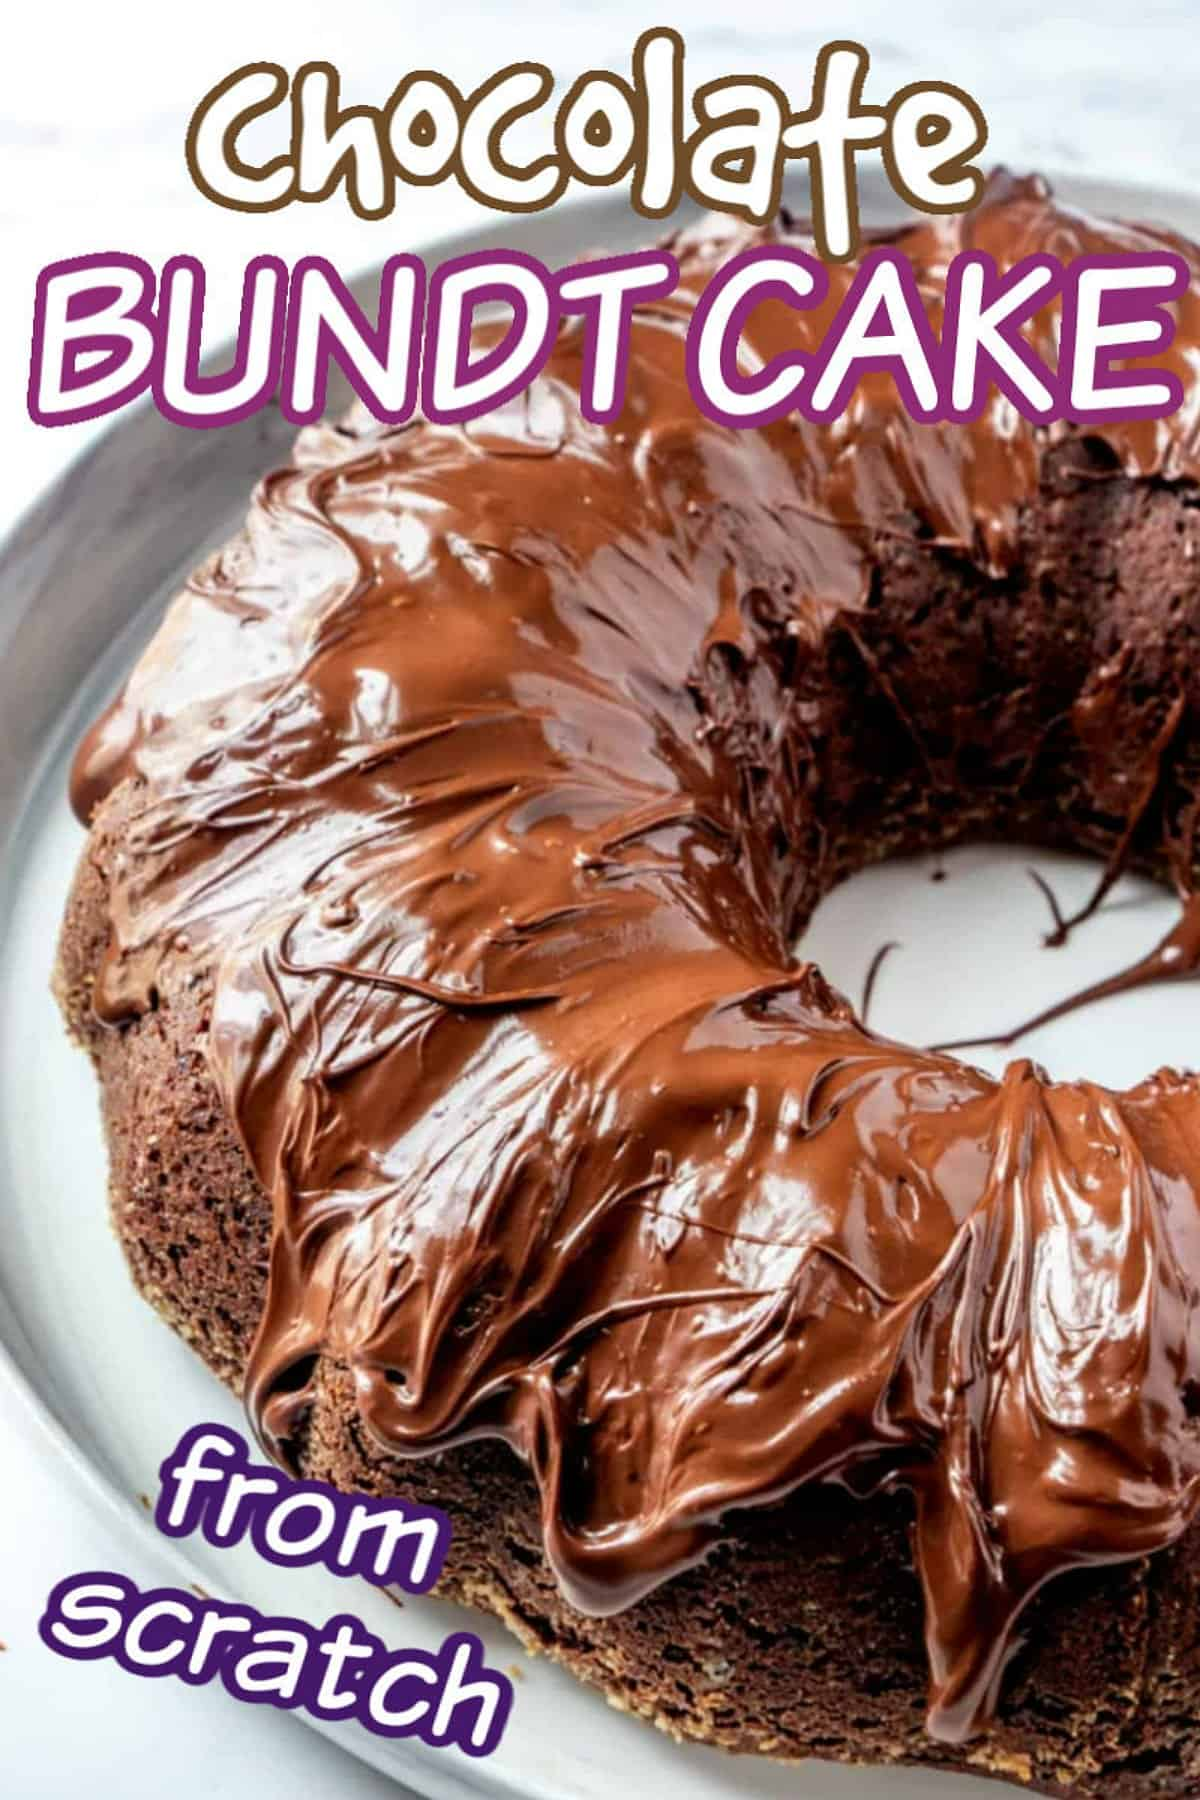 Full vegan chocolate bundt cake cropped with text for pinning to Pinterest.